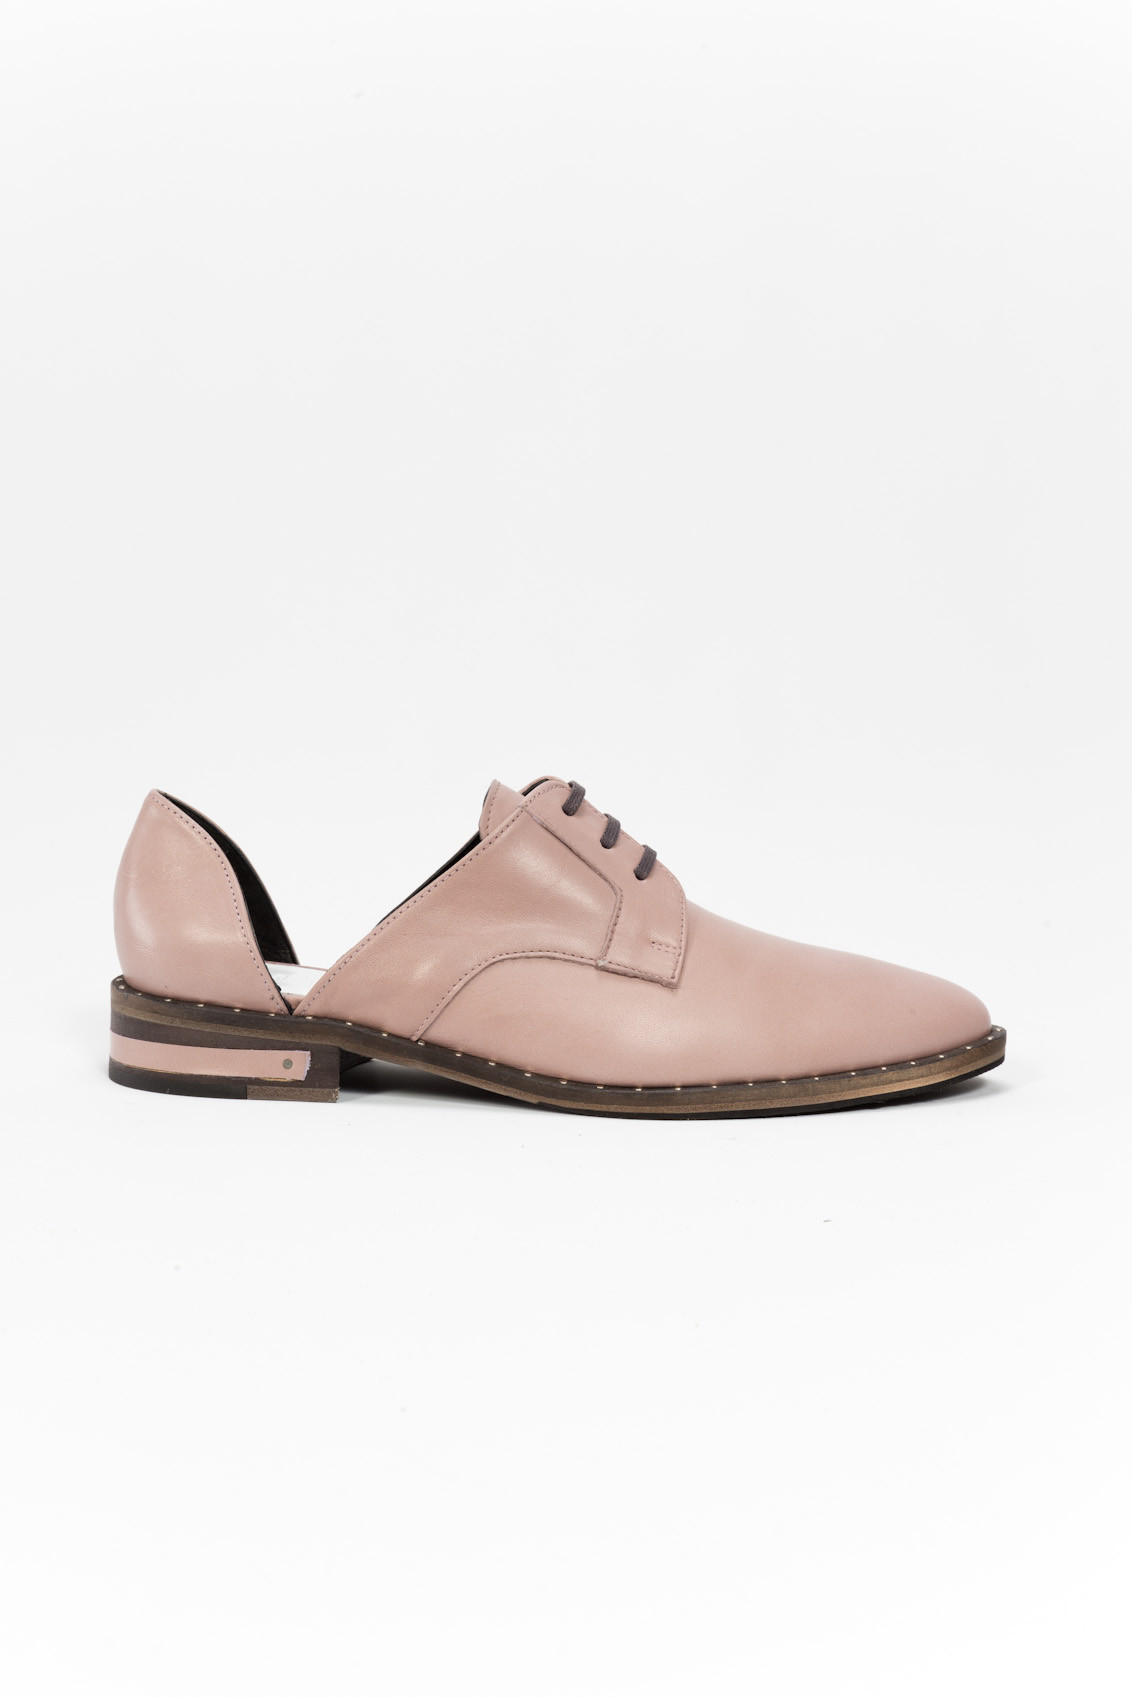 frēda salvador wit leather oxford shoes in pink lyst